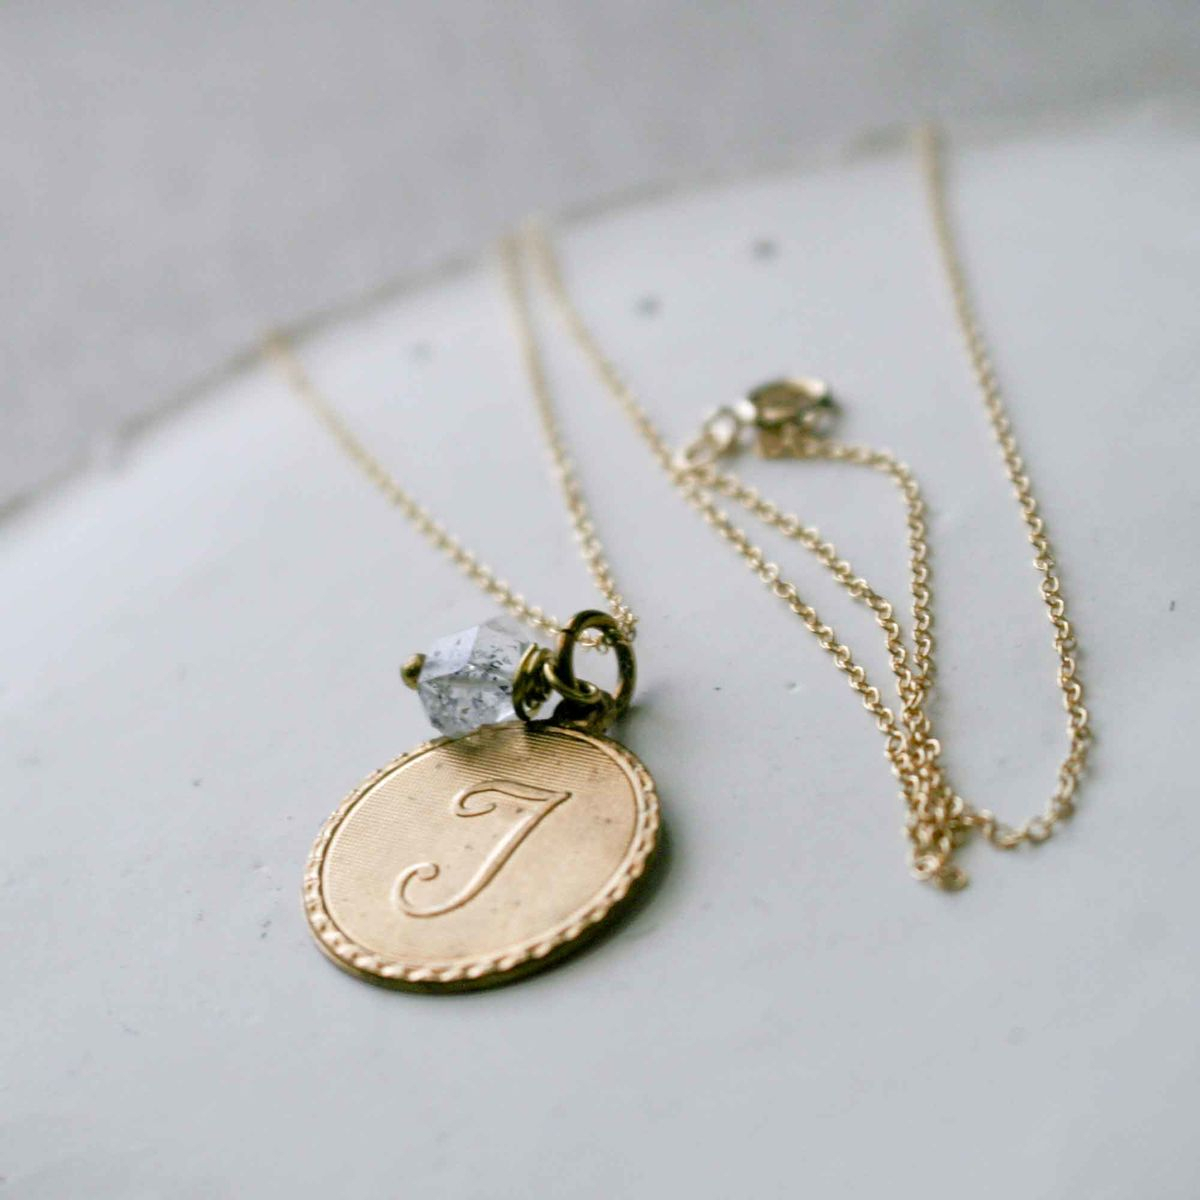 Uppercase Cursive Initial Monogram Letter Round Disc Charm Necklace Pertaining To Most Popular Letter J Alphabet Locket Element Necklaces (View 24 of 25)